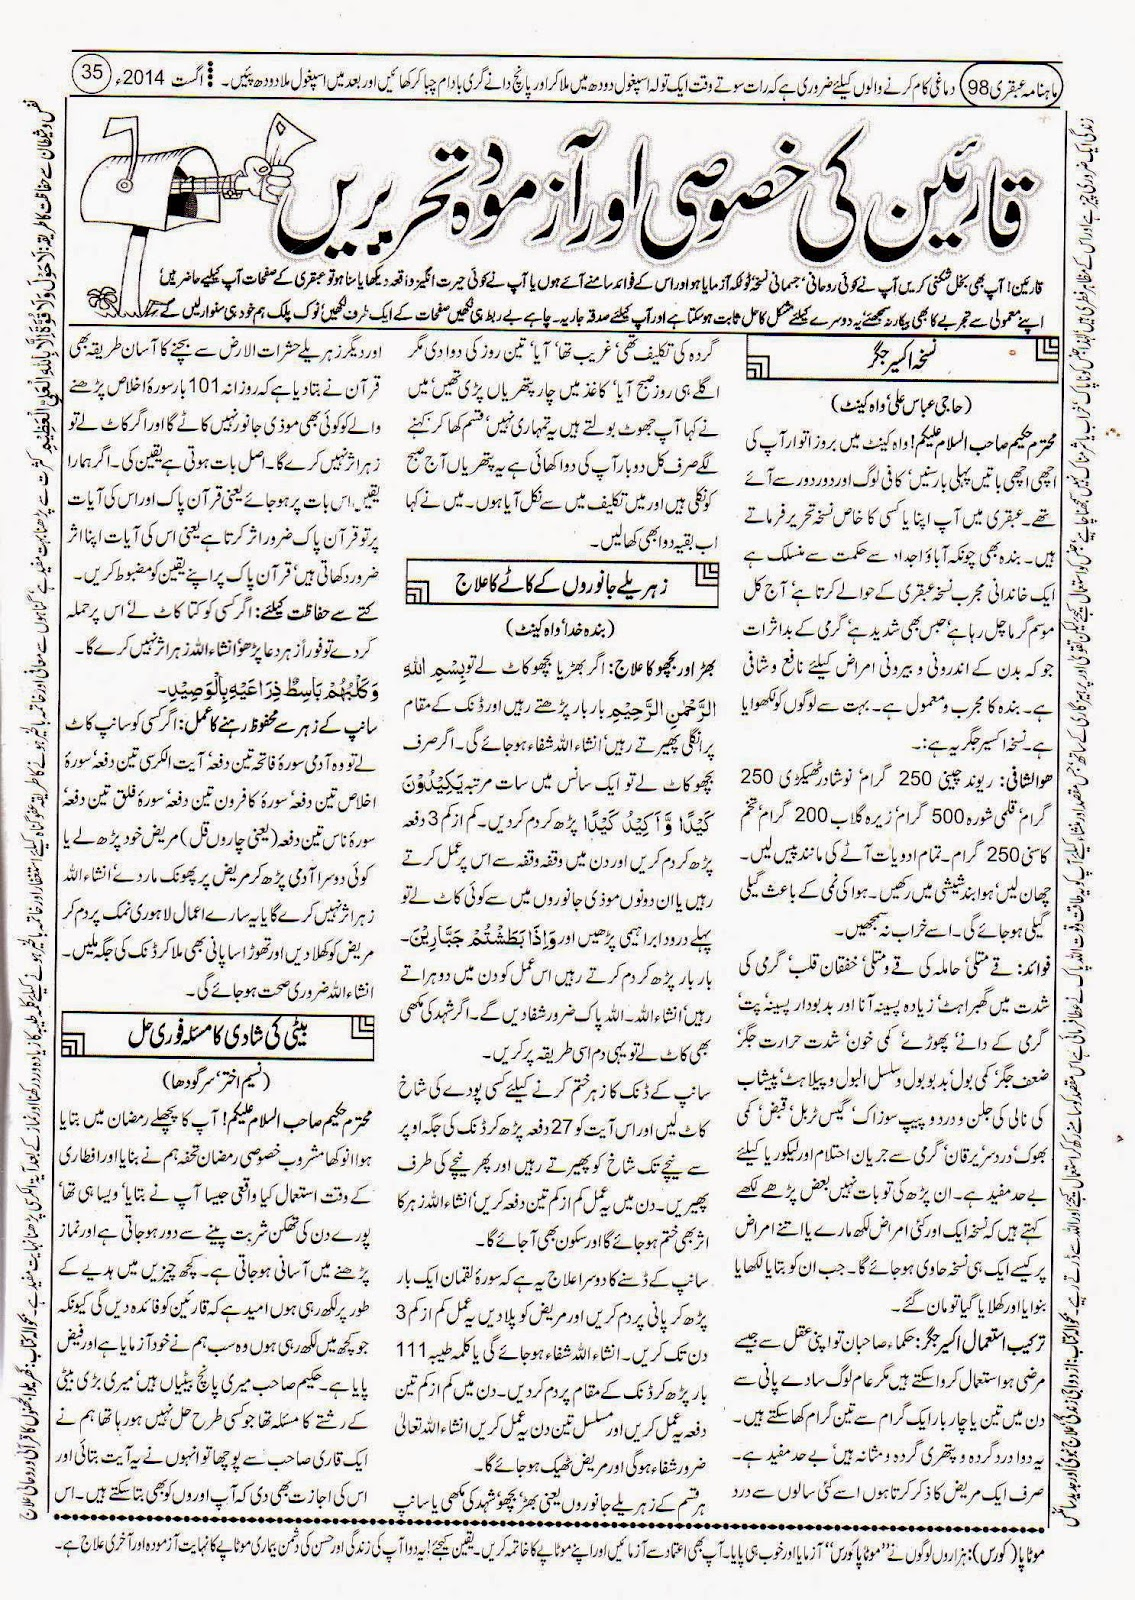 Ubqari August 2014 Page 35